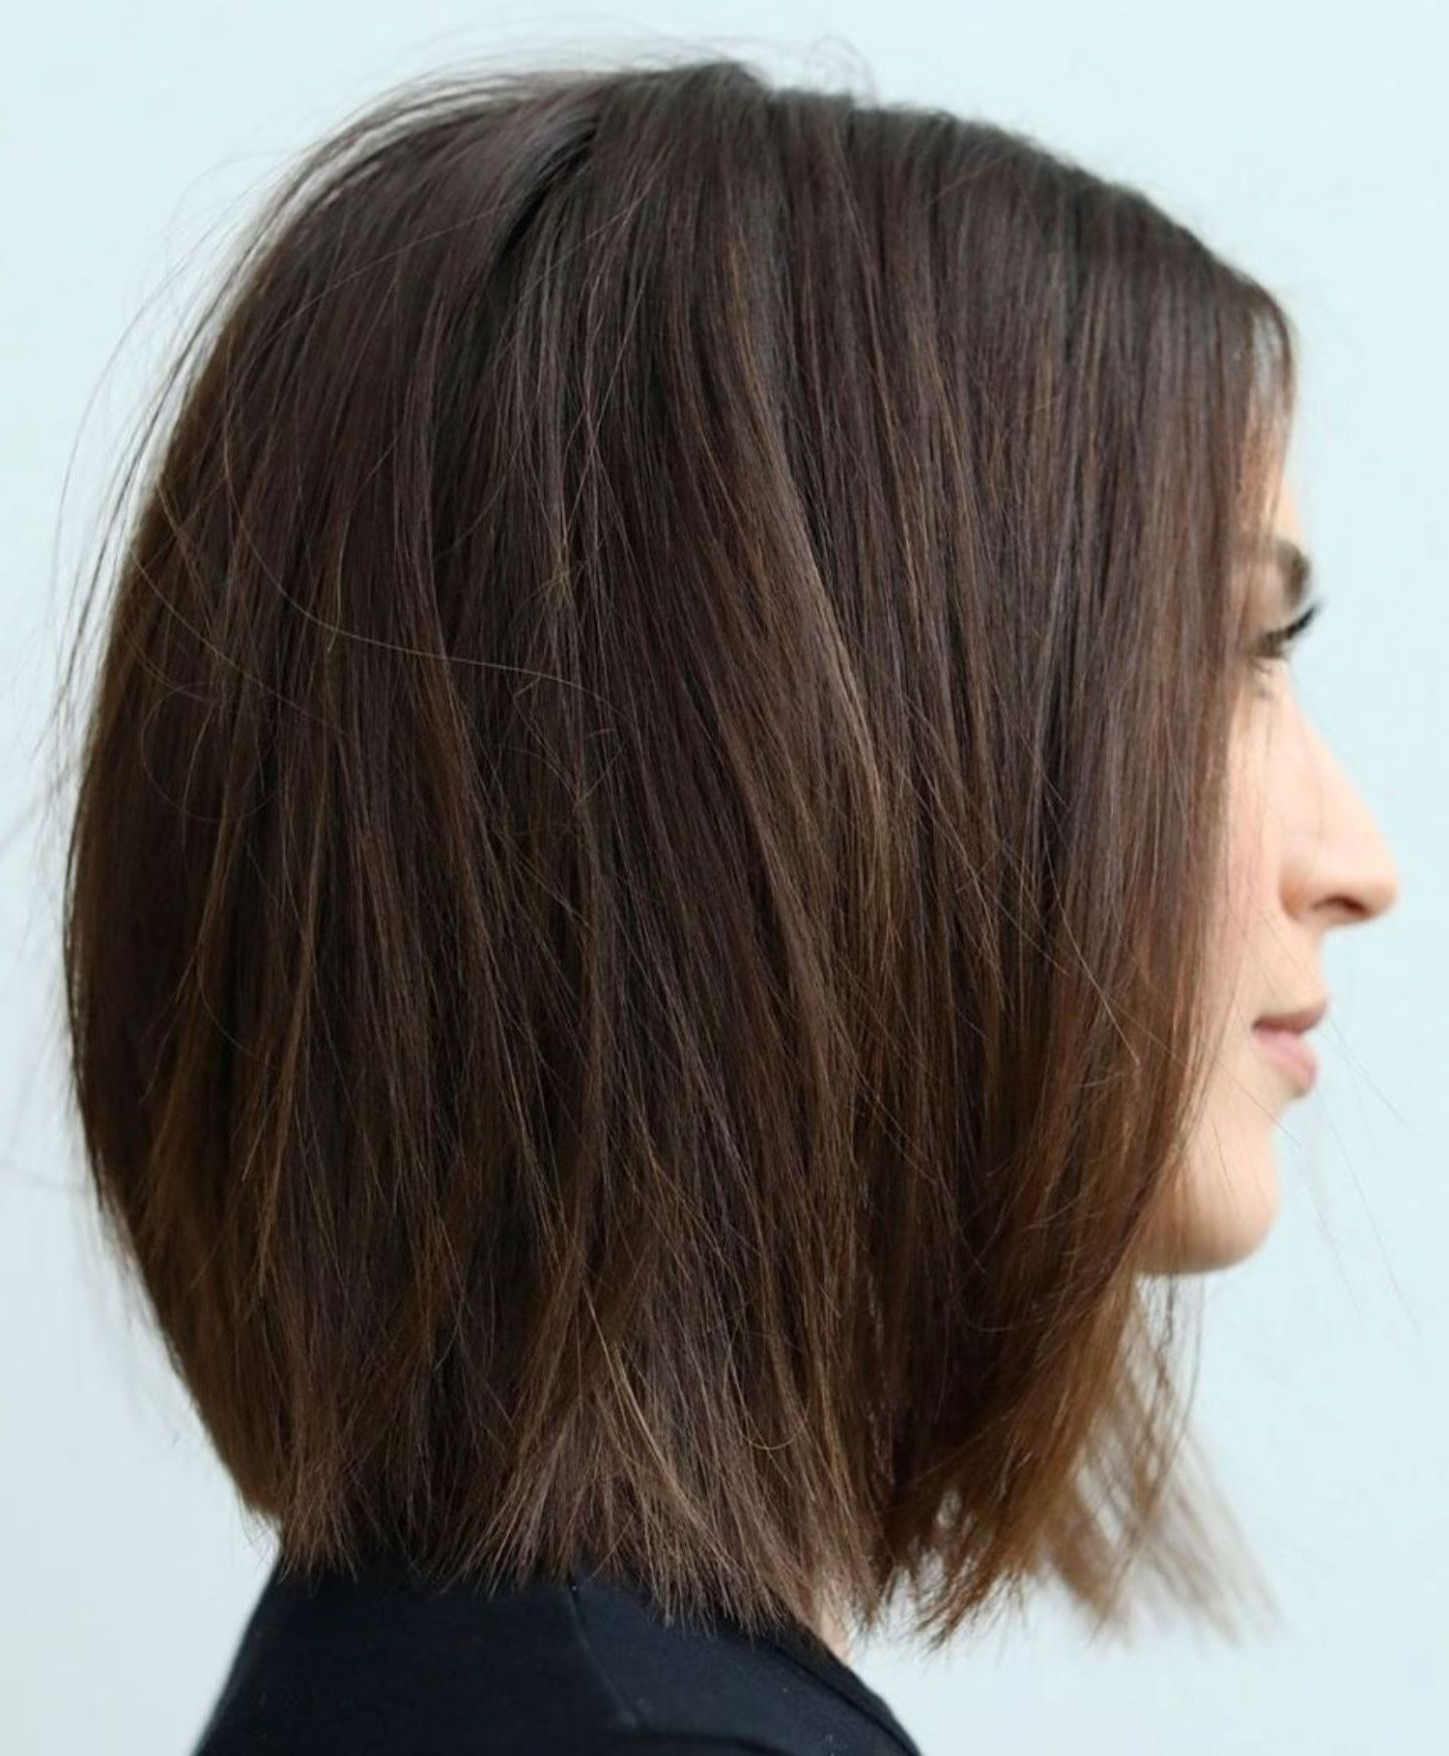 Newest Wispy Straight Finely Chopped Brunette Haircuts With 60 Fun And Flattering Medium Hairstyles For Women In (View 15 of 20)